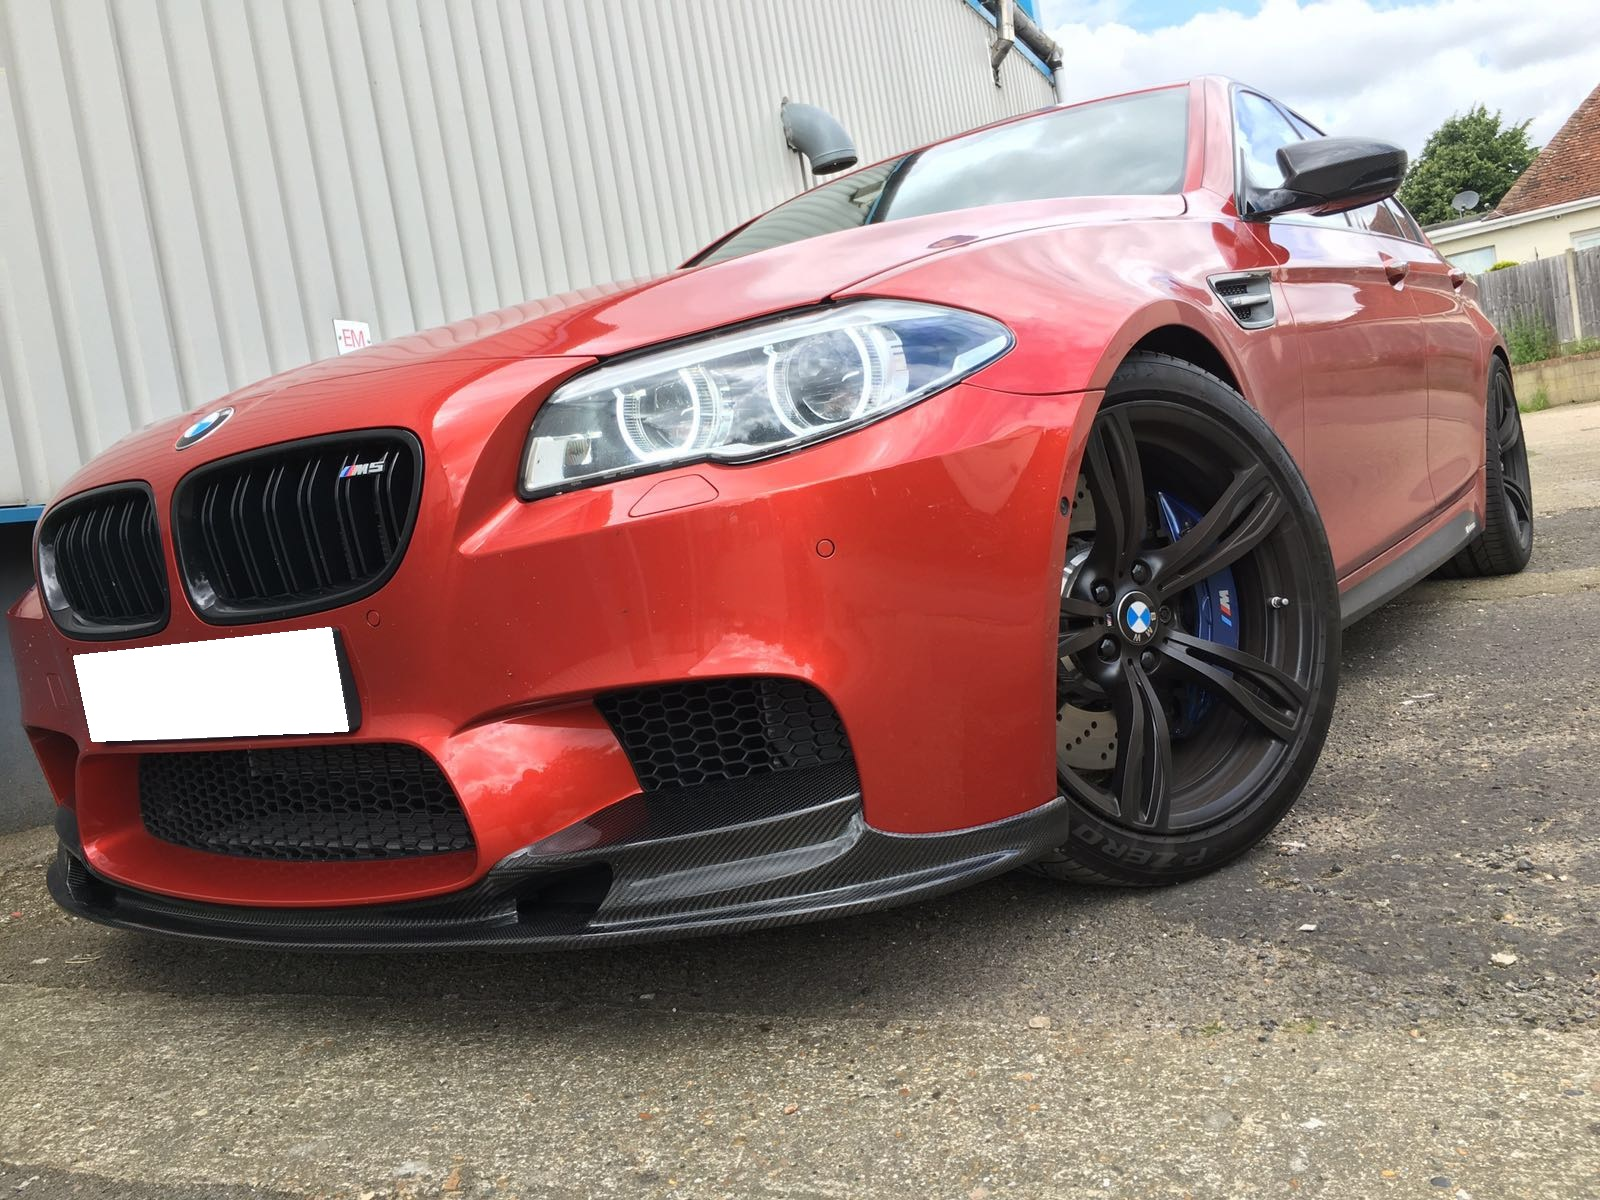 F10 M5 - Carbon styling